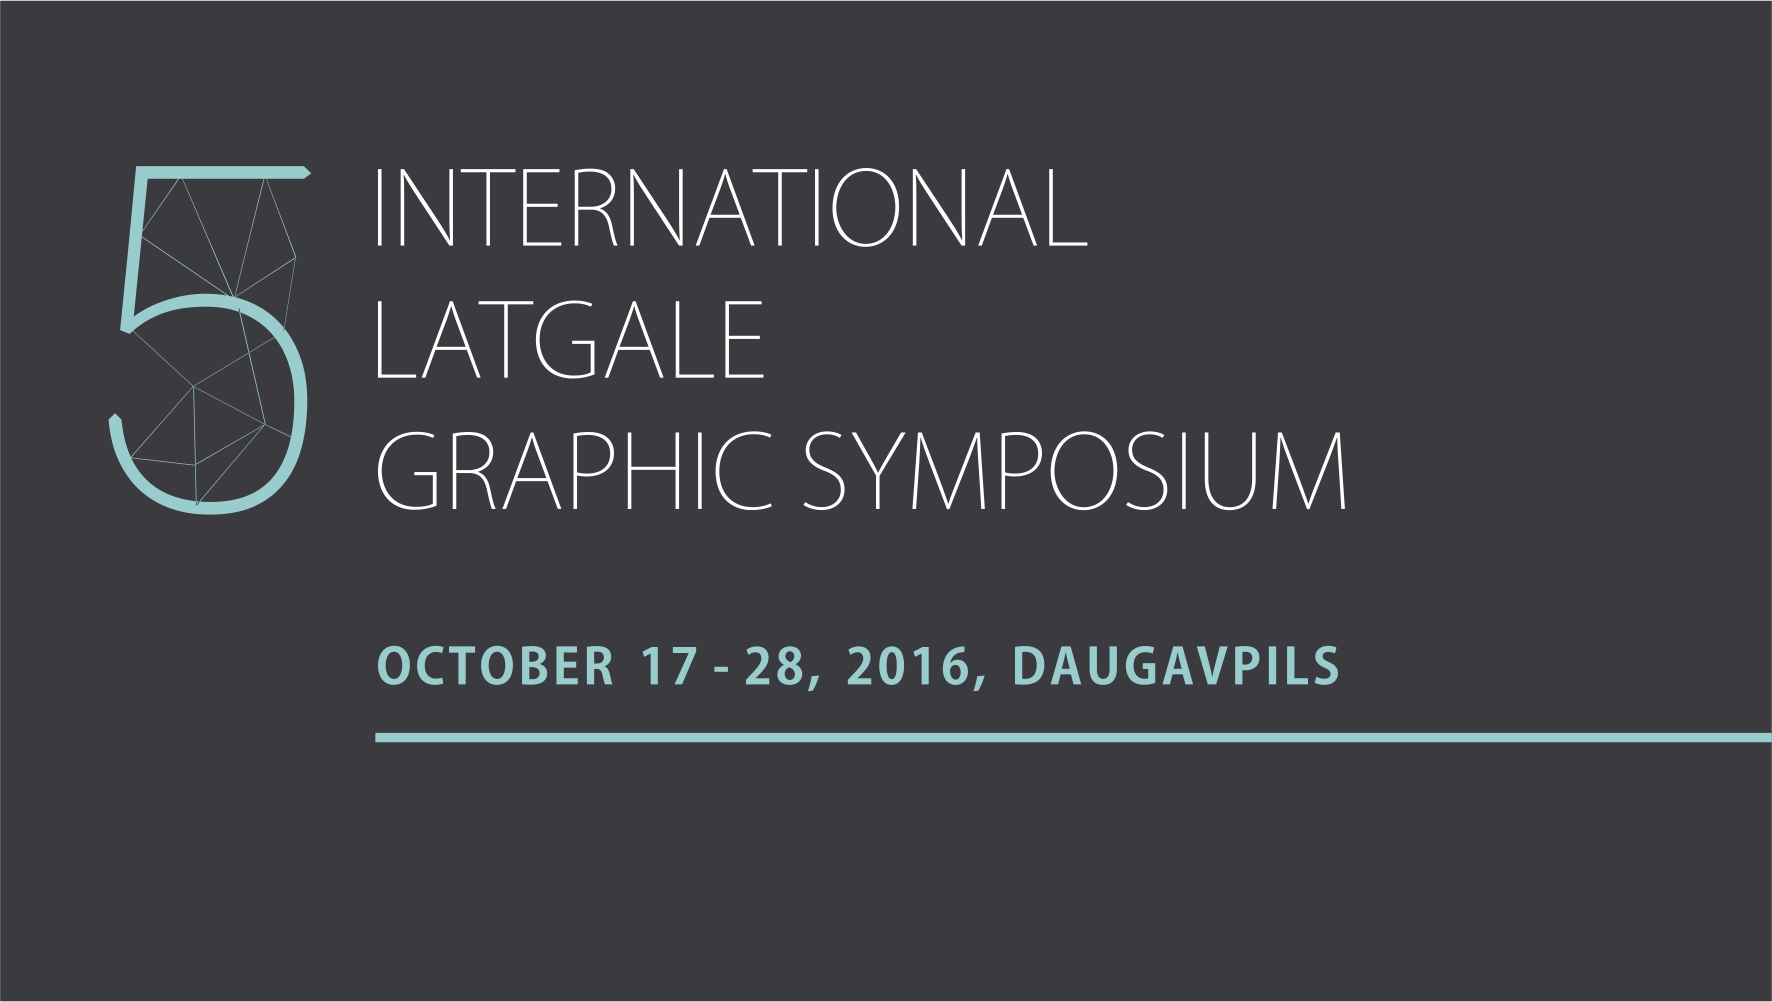 Logo des 5th International Latgale Graphic Symposium